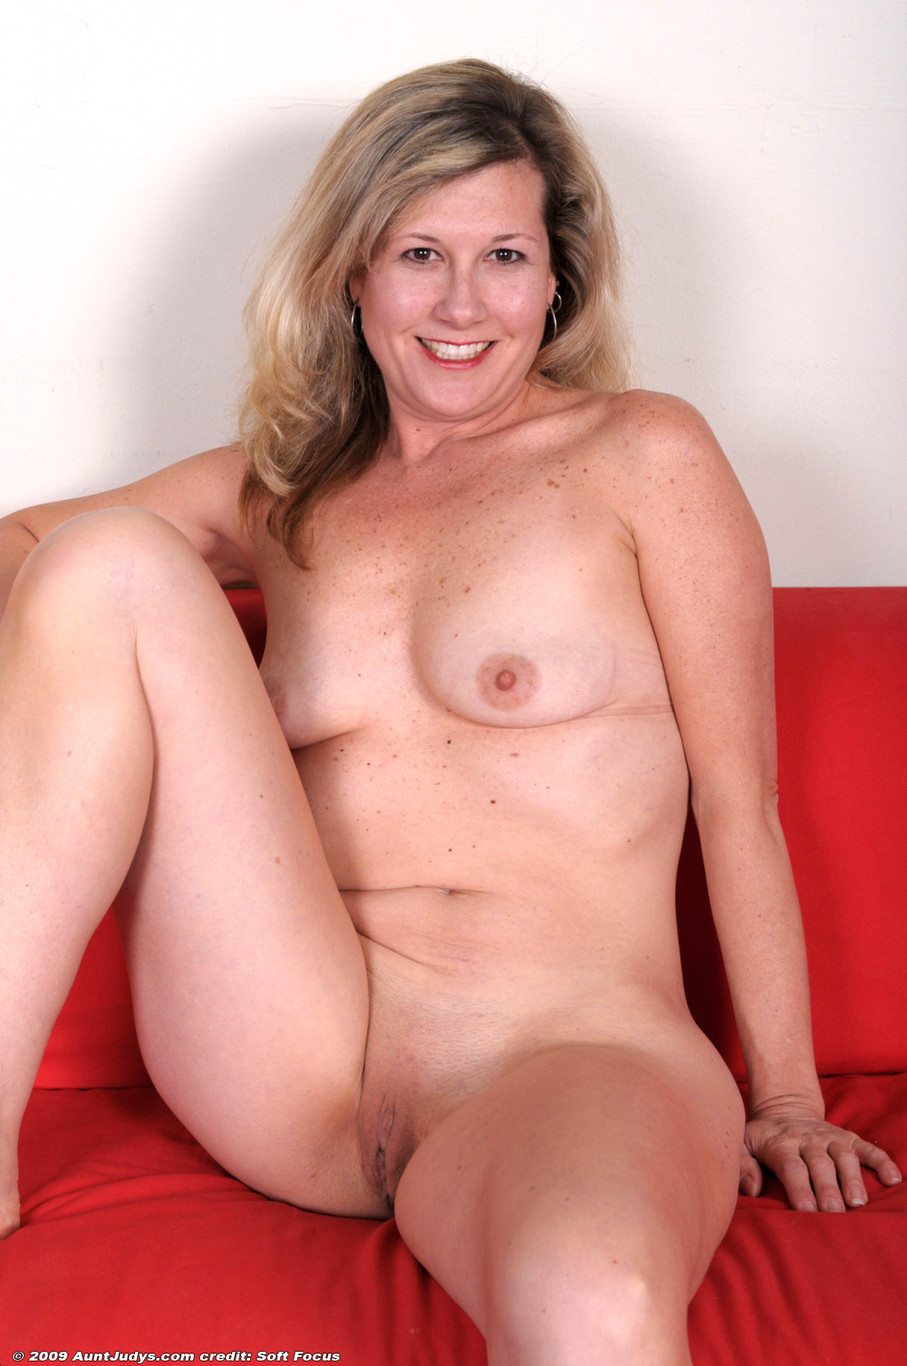 Aunt judys models galleries